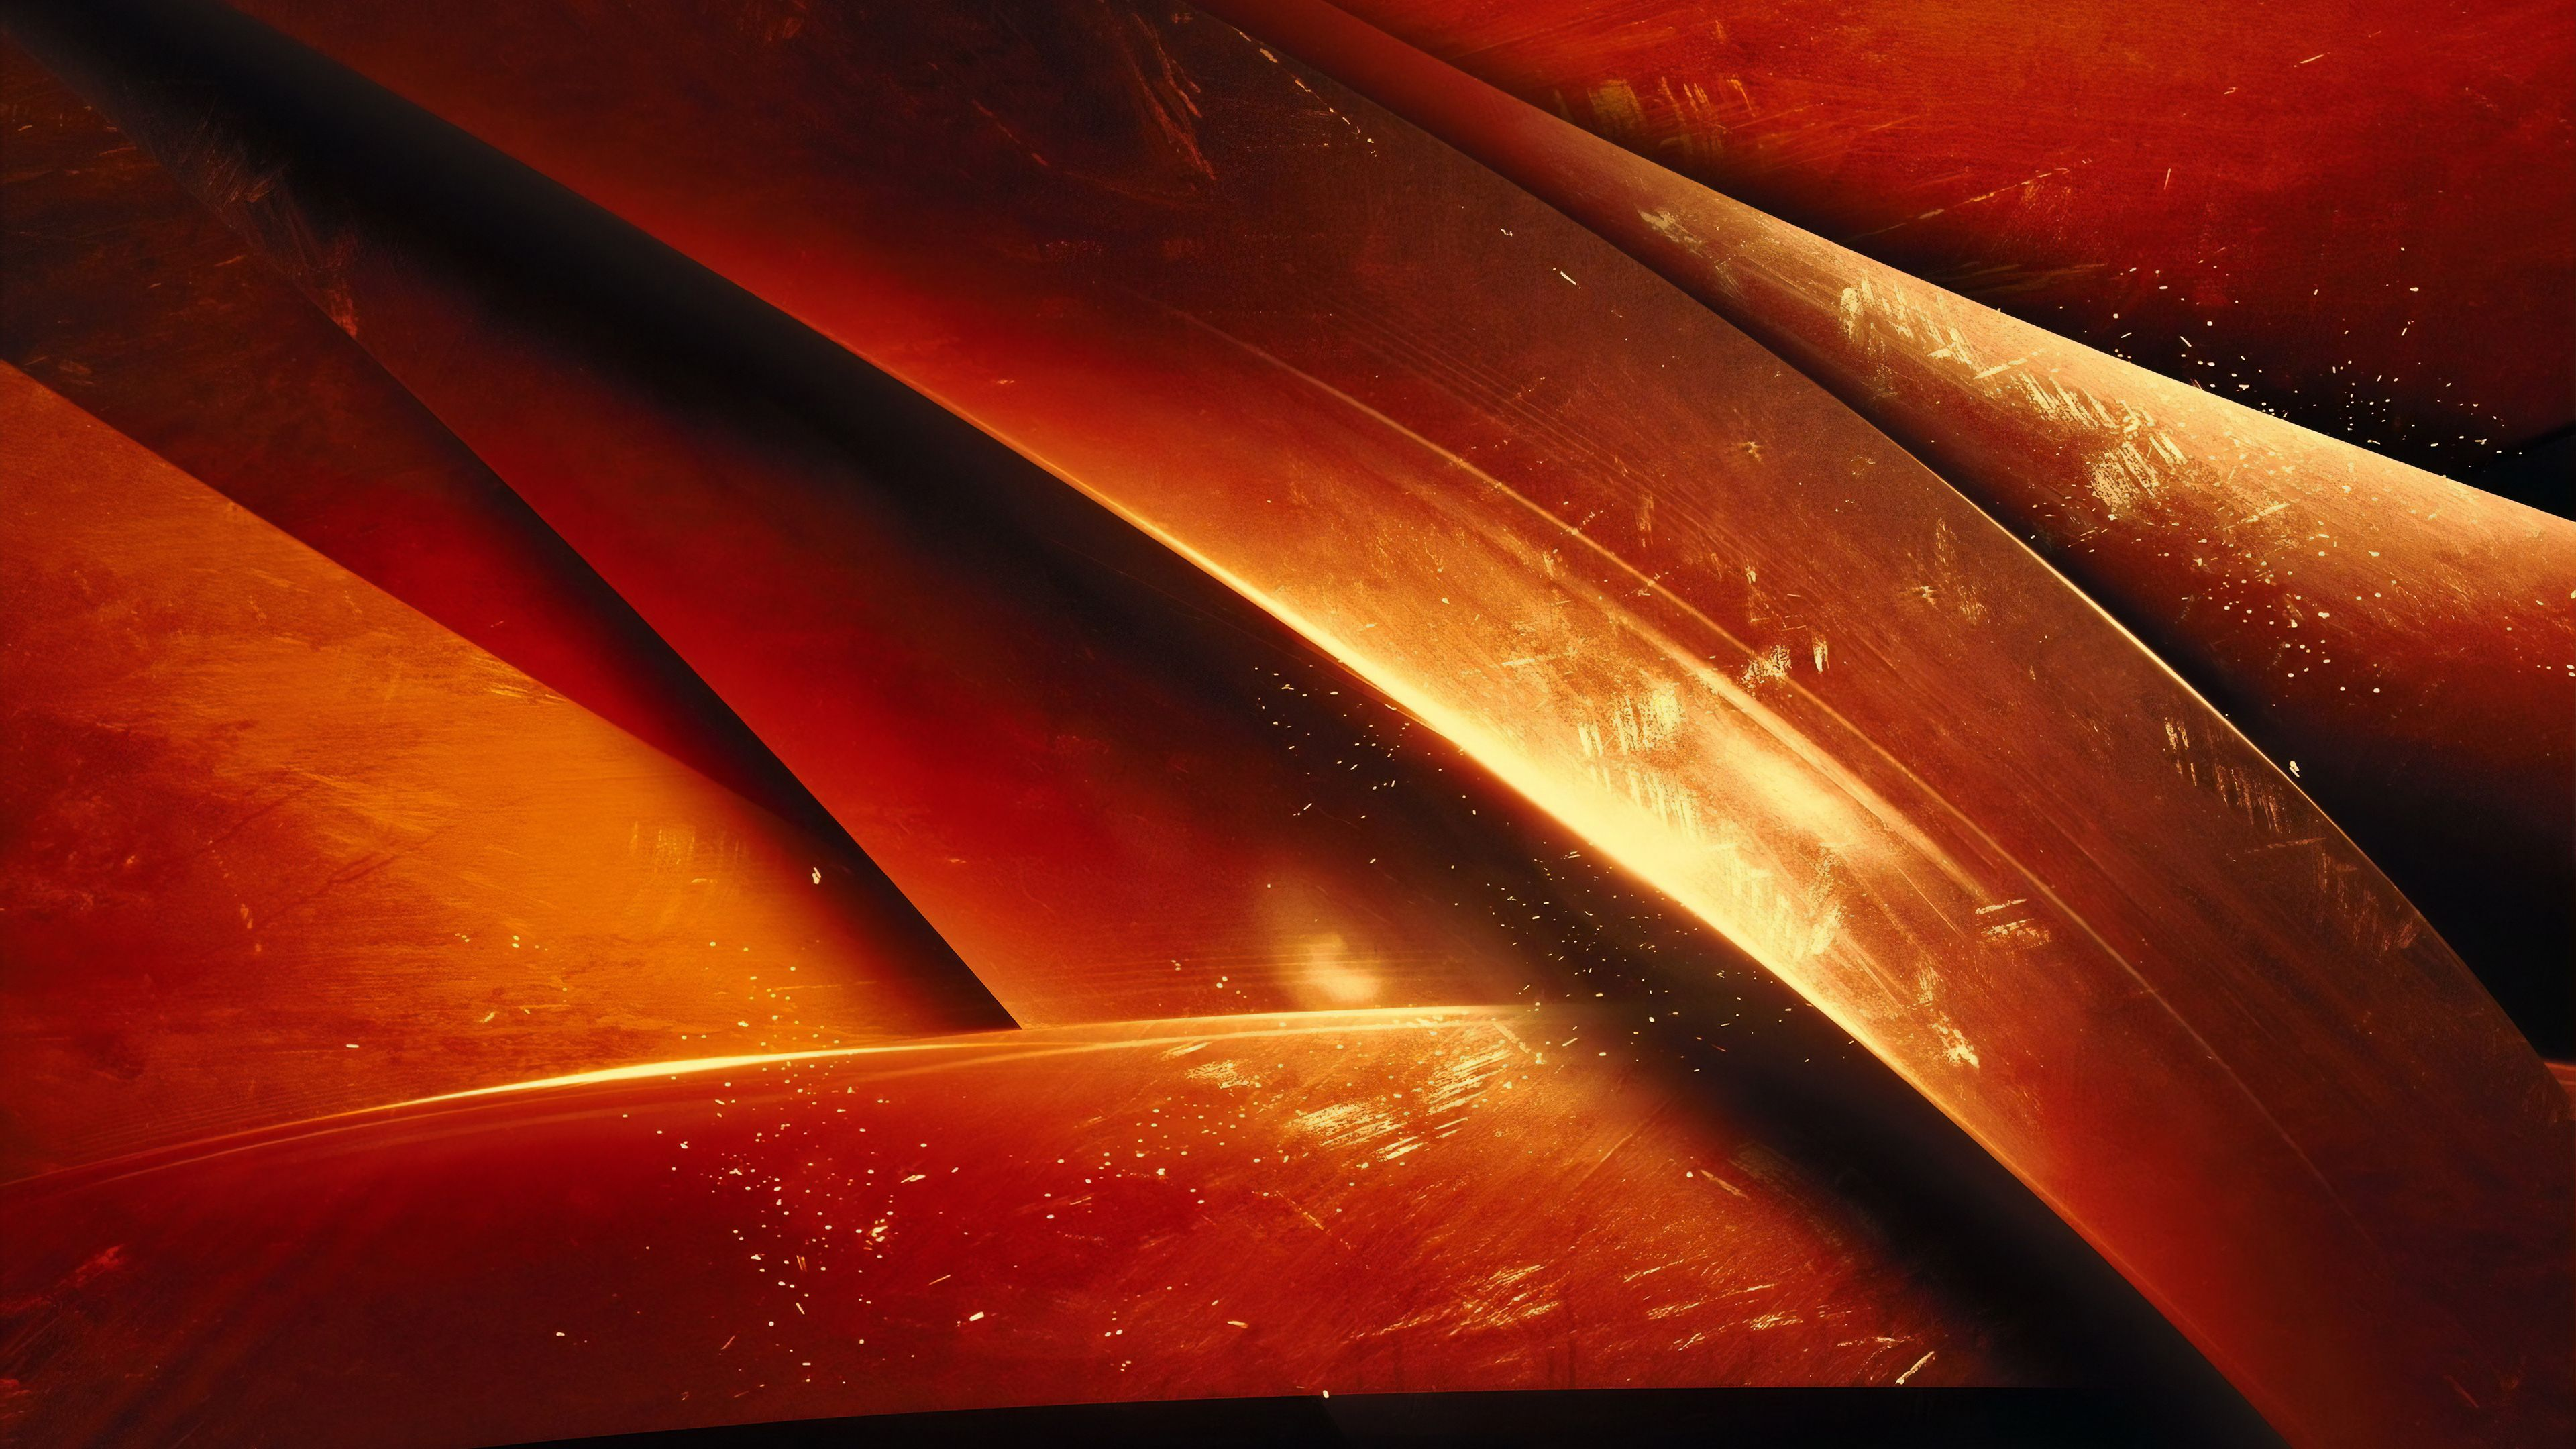 Abstract Orange HD Wallpapers - Wallpaper Cave